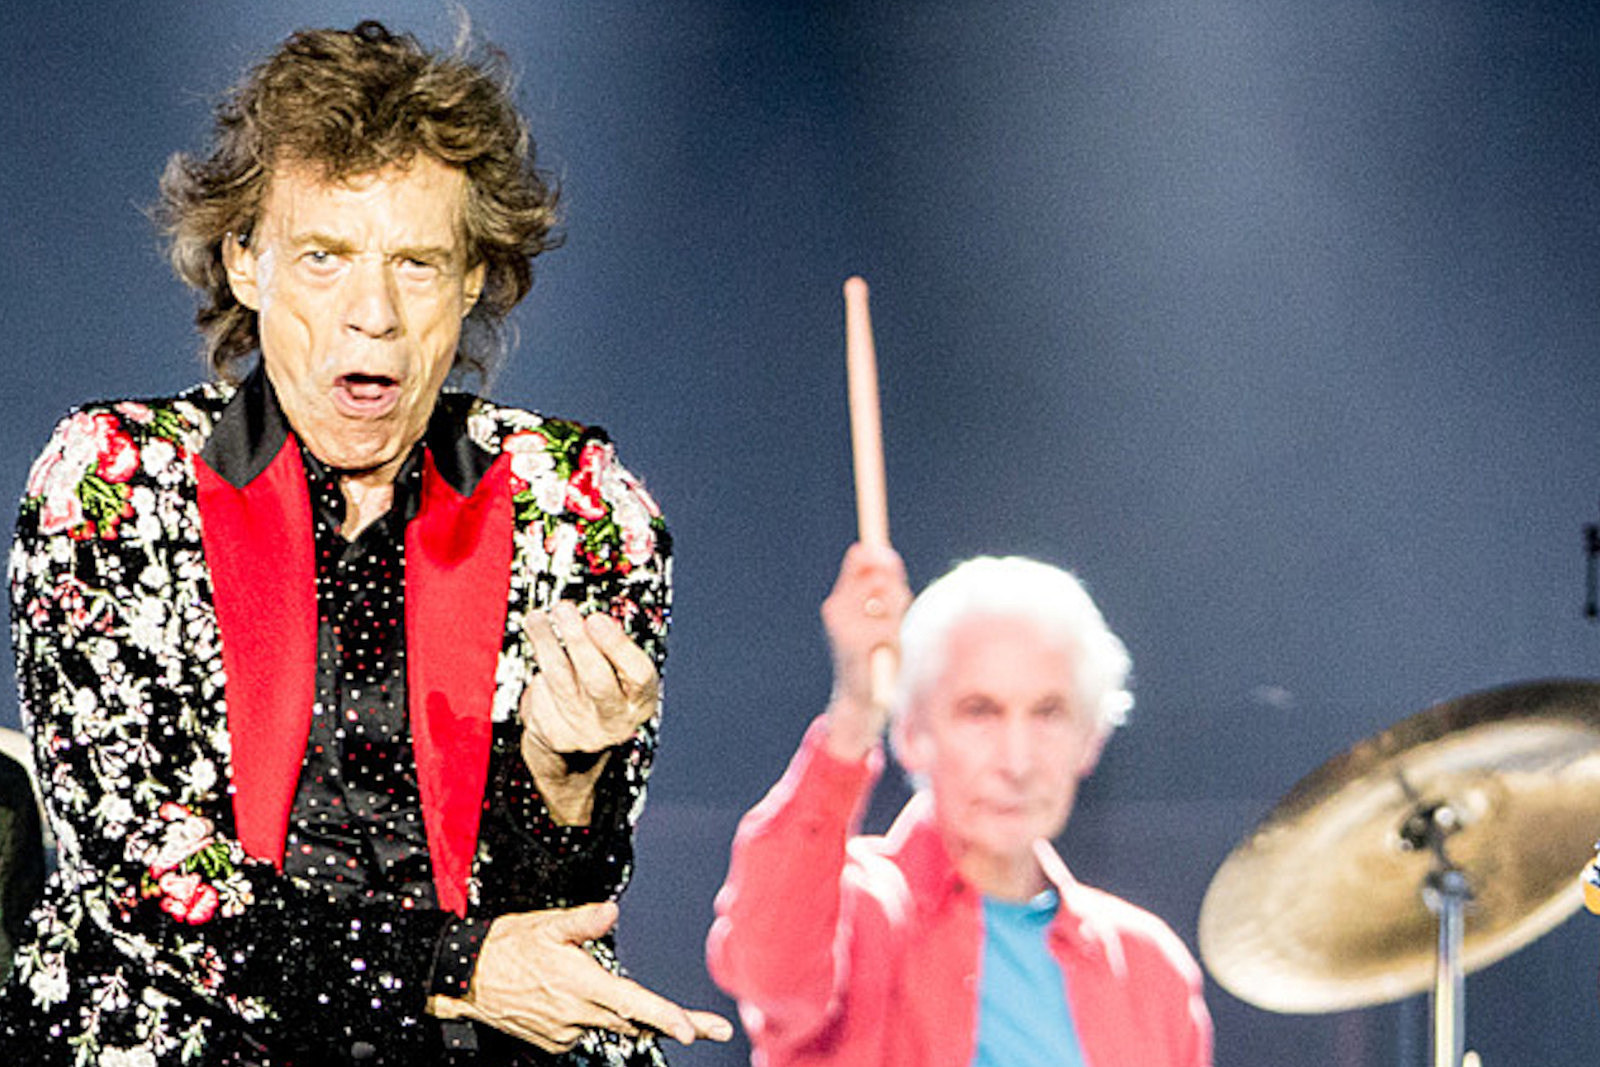 Mick Jagger Answers Those Who Say the Rolling Stones Should Quit